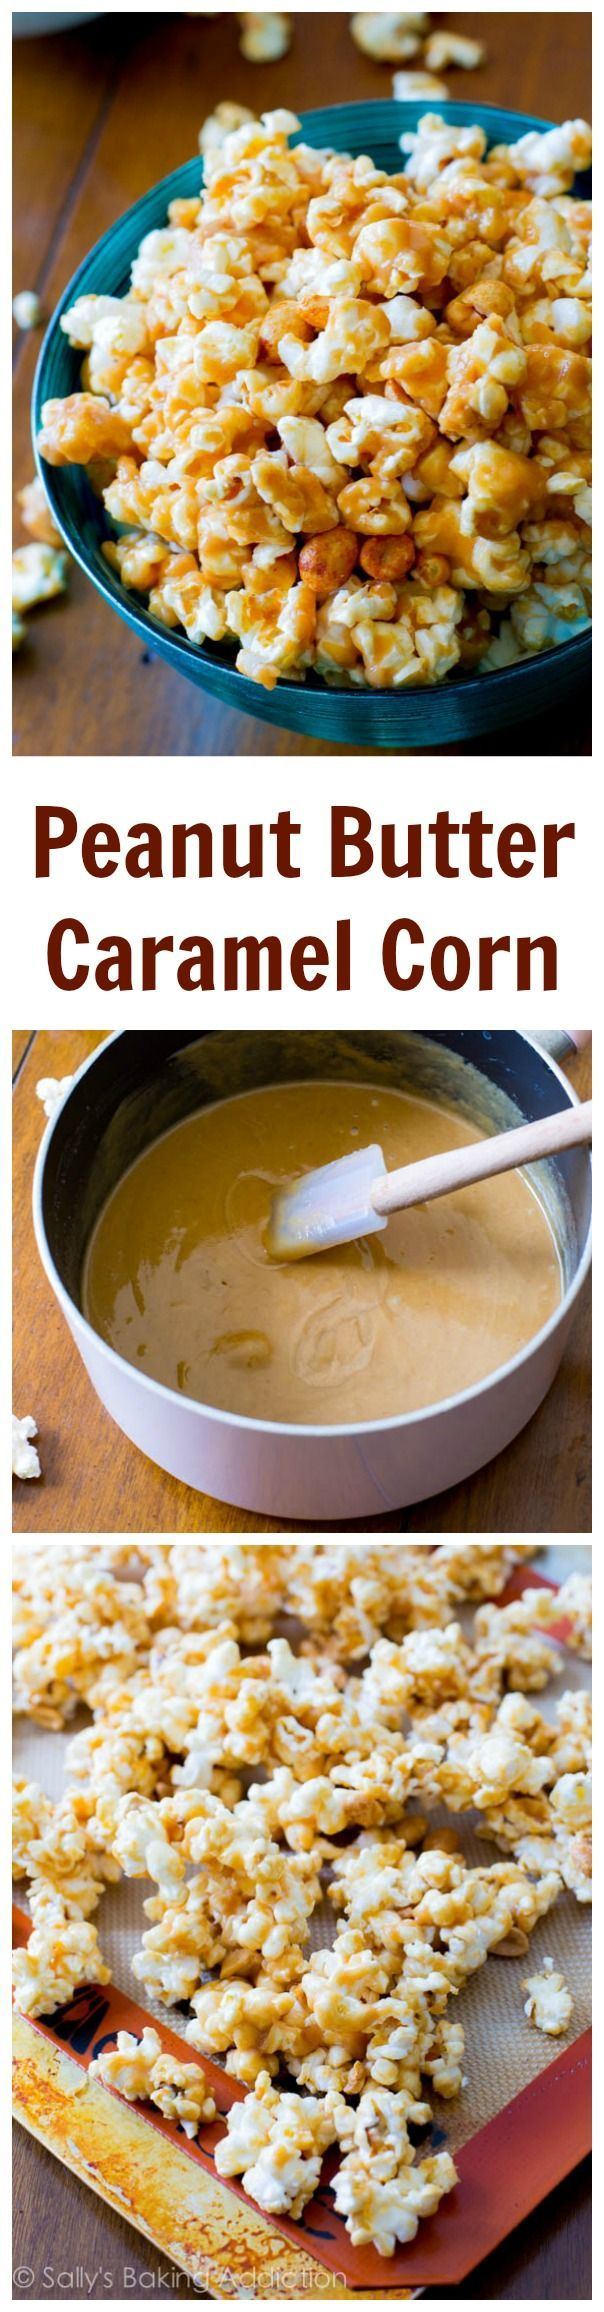 Salty, sweet, sticky, and easy-to-make Peanut Butter Caramel Corn. You won't be able to put this stuff down! A 20 minute recipe.